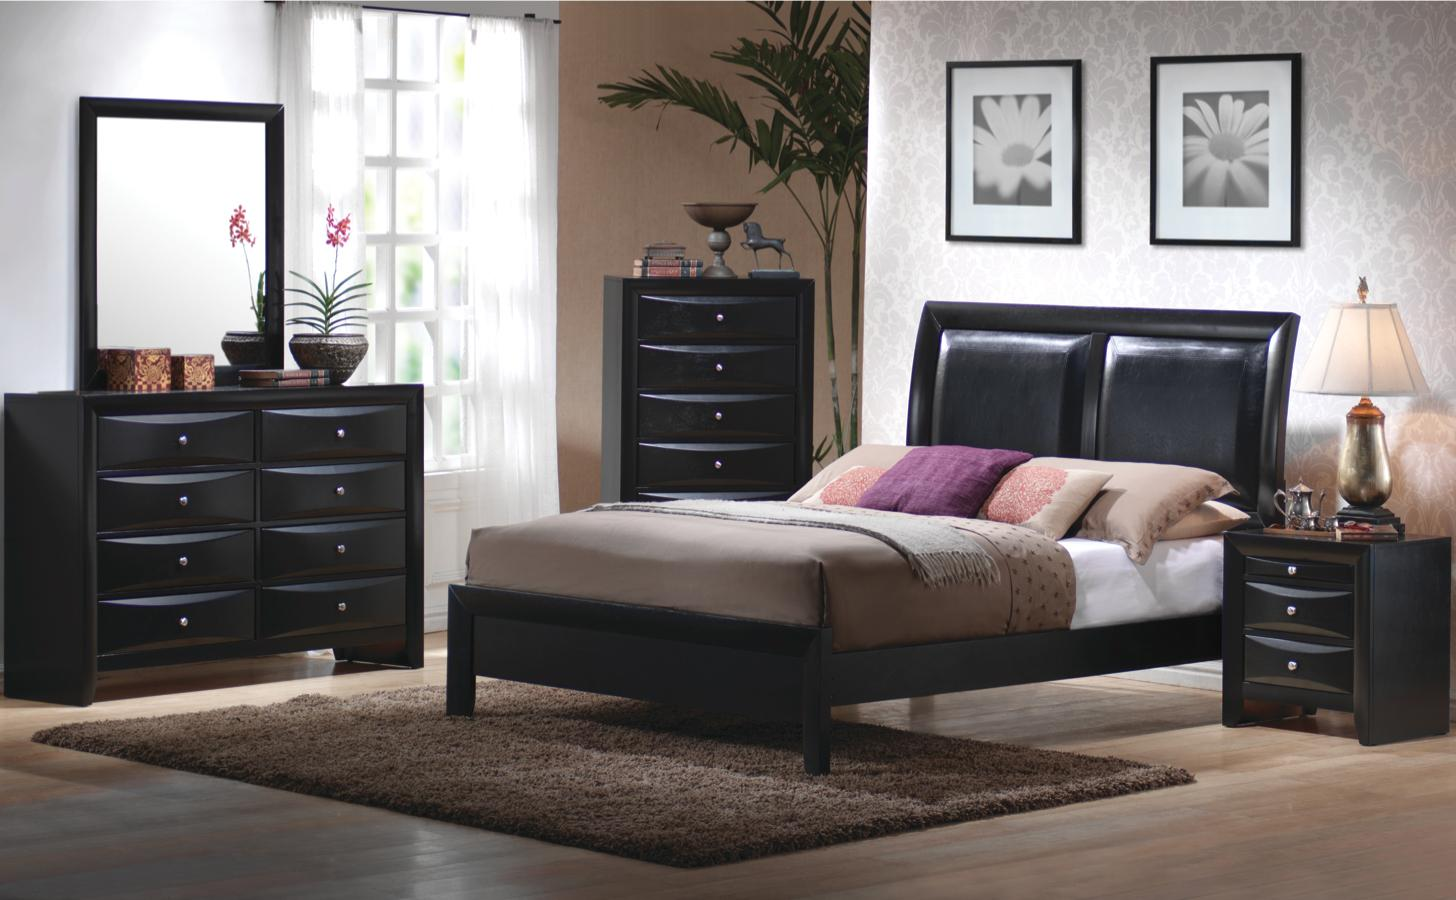 Briana California King Bedroom Group by Coaster at Value City Furniture